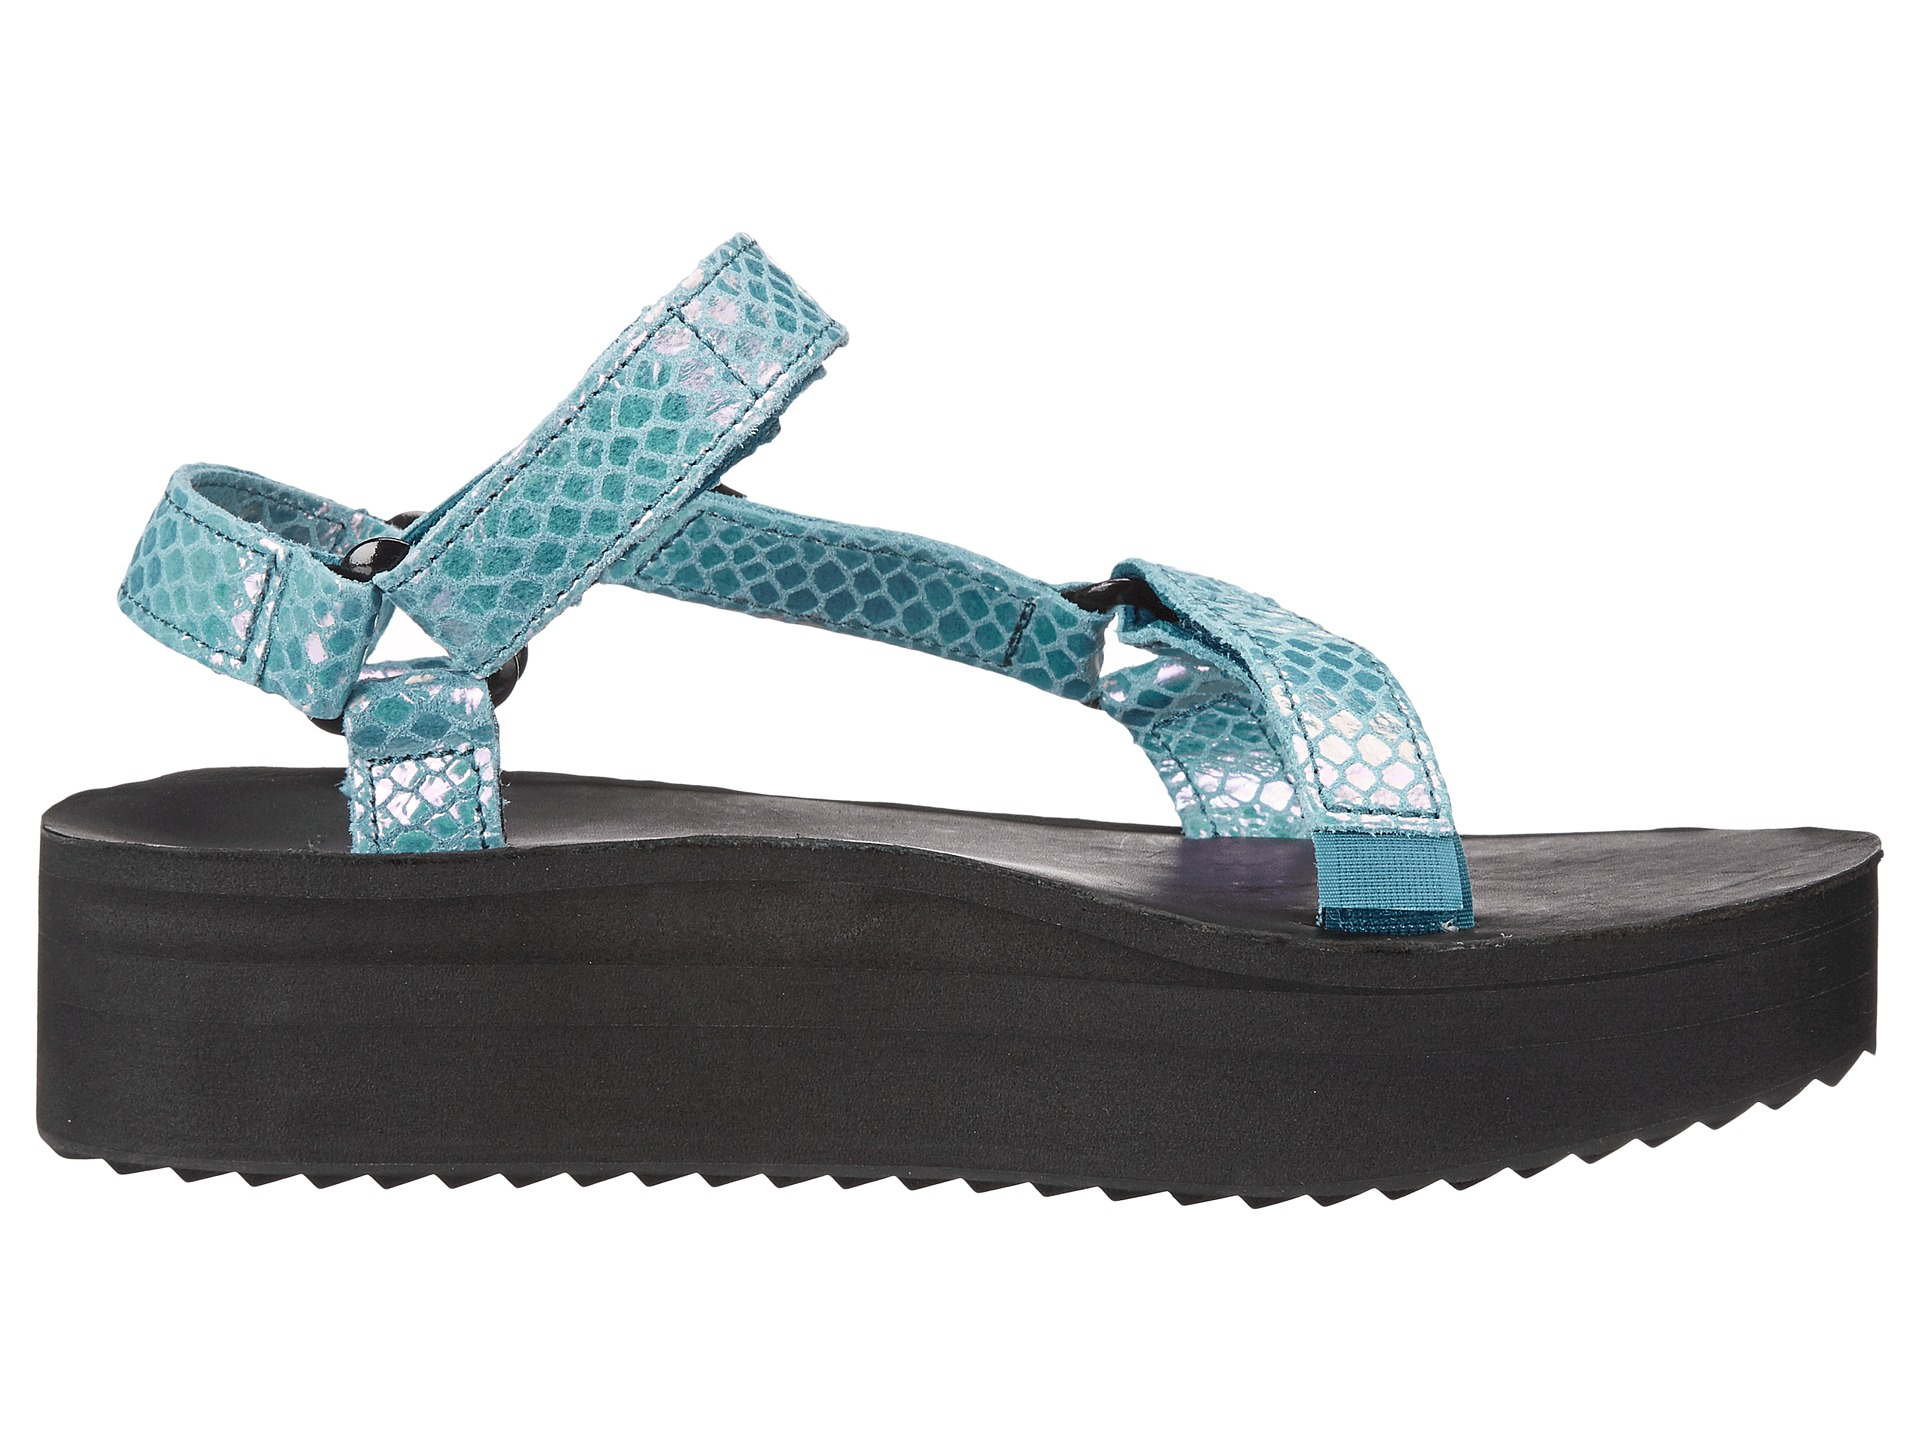 913bf5e1741 Lyst - Teva Flatform Universal Iridescent in Blue